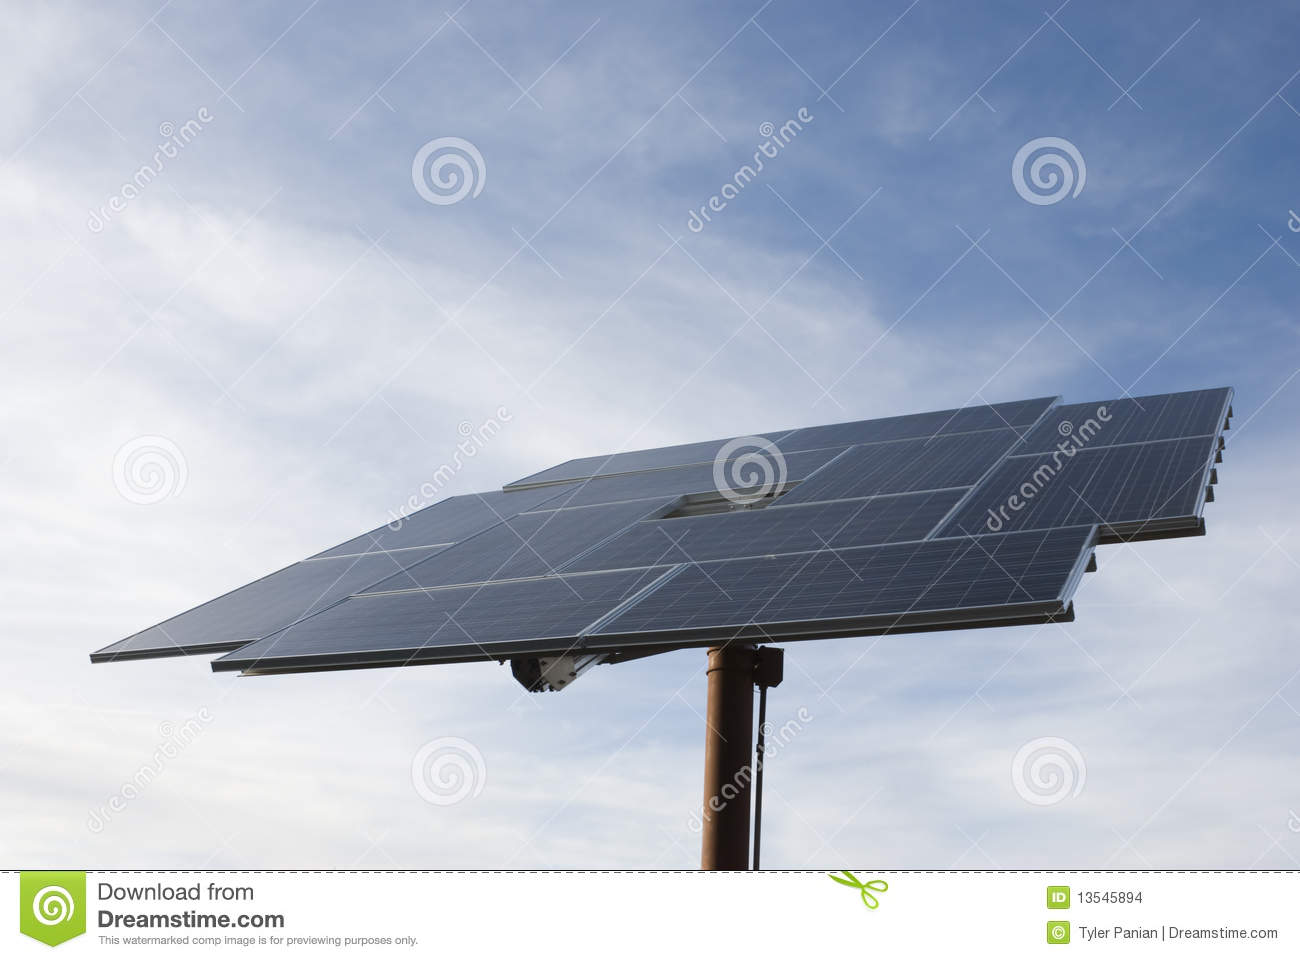 Solar Array Stock Images - Image: 13545894